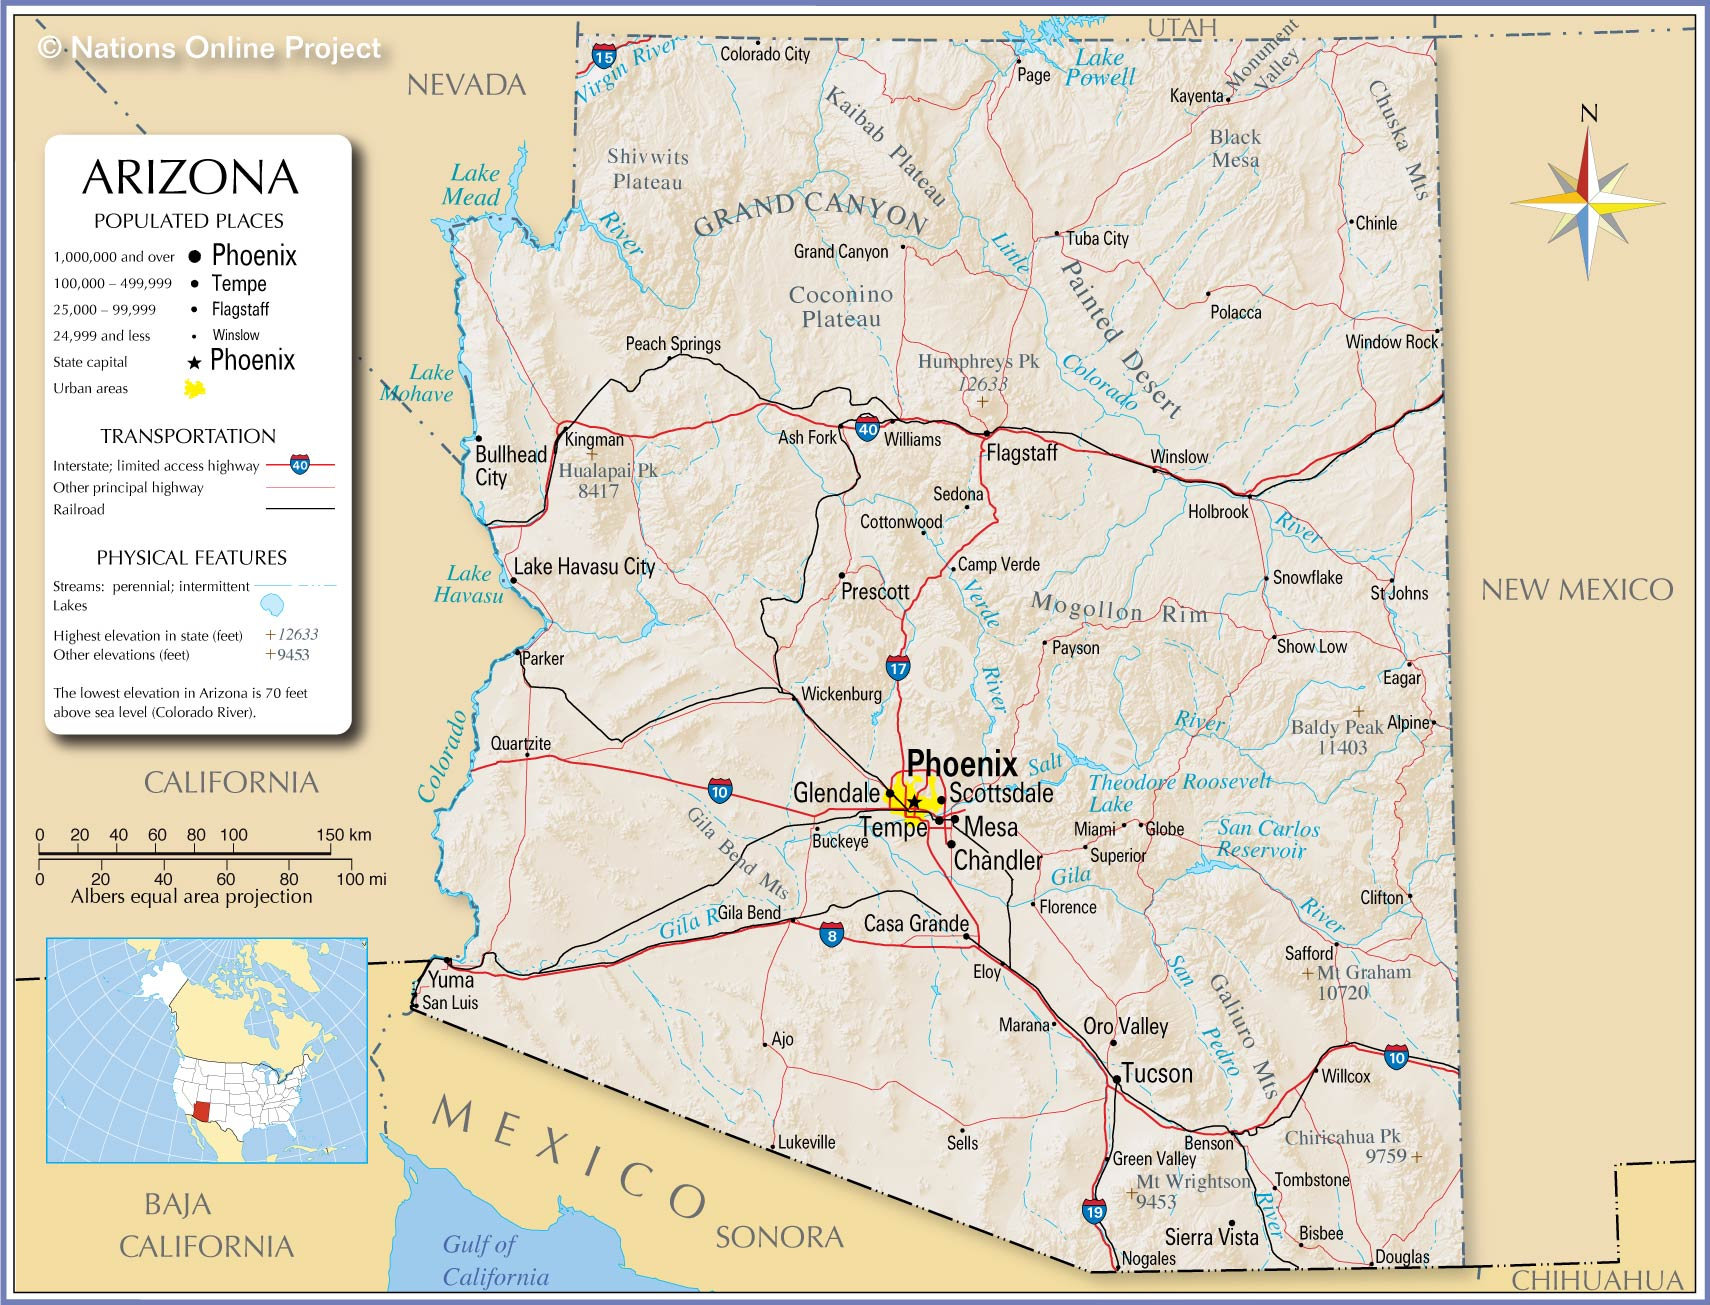 Reference Map Of Arizona USA Nations Online Project - Usa map with cities and states detailed